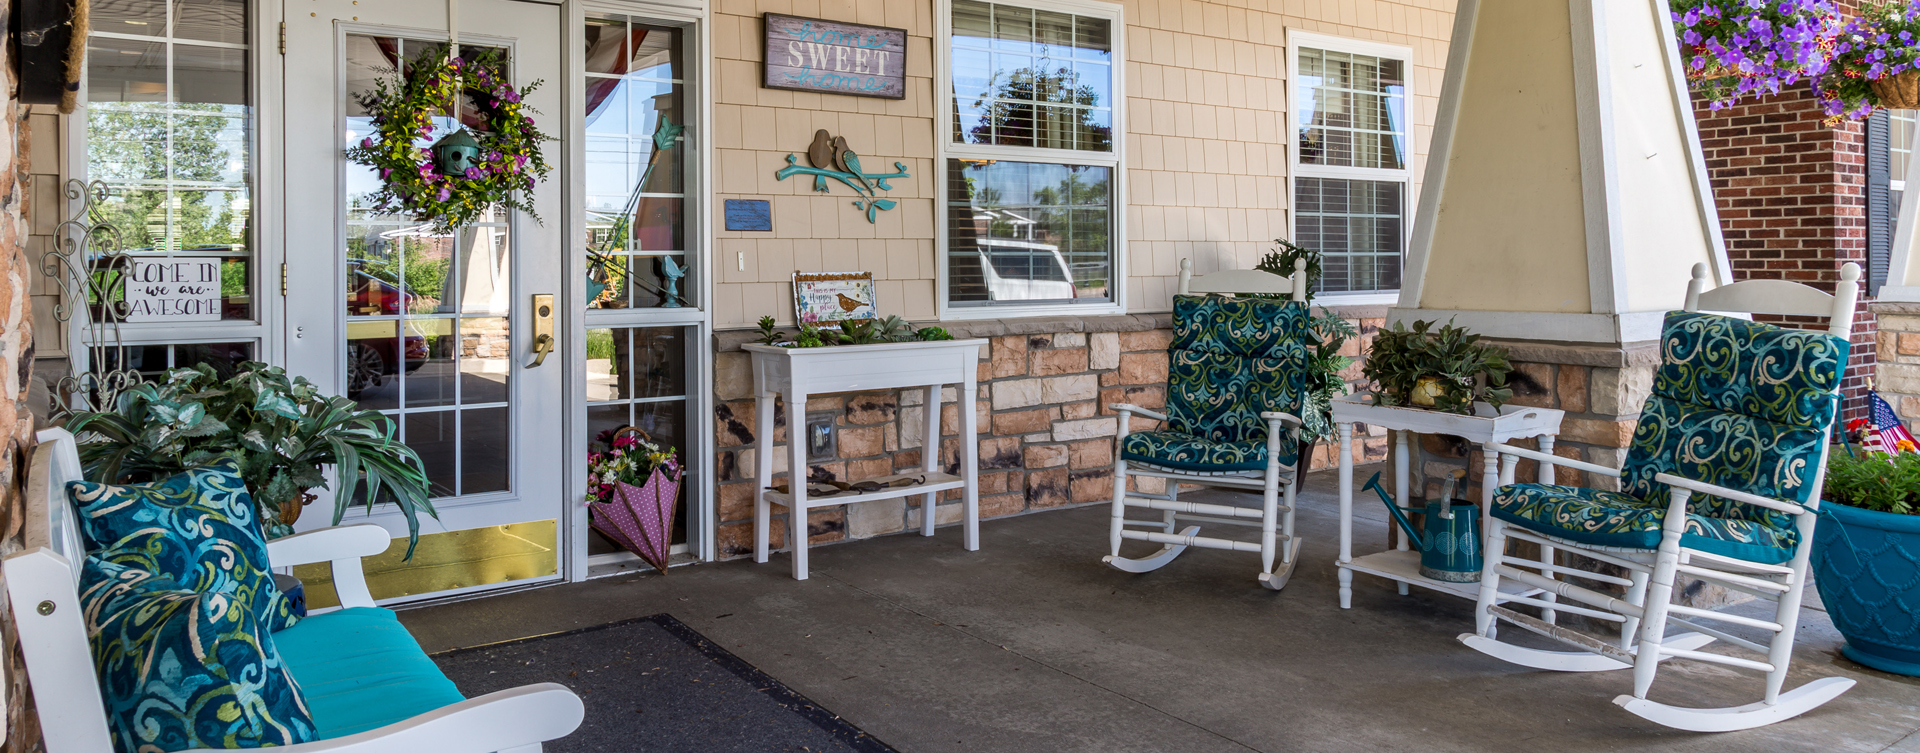 Relax in your favorite chair on the porch at Bickford of Okemos